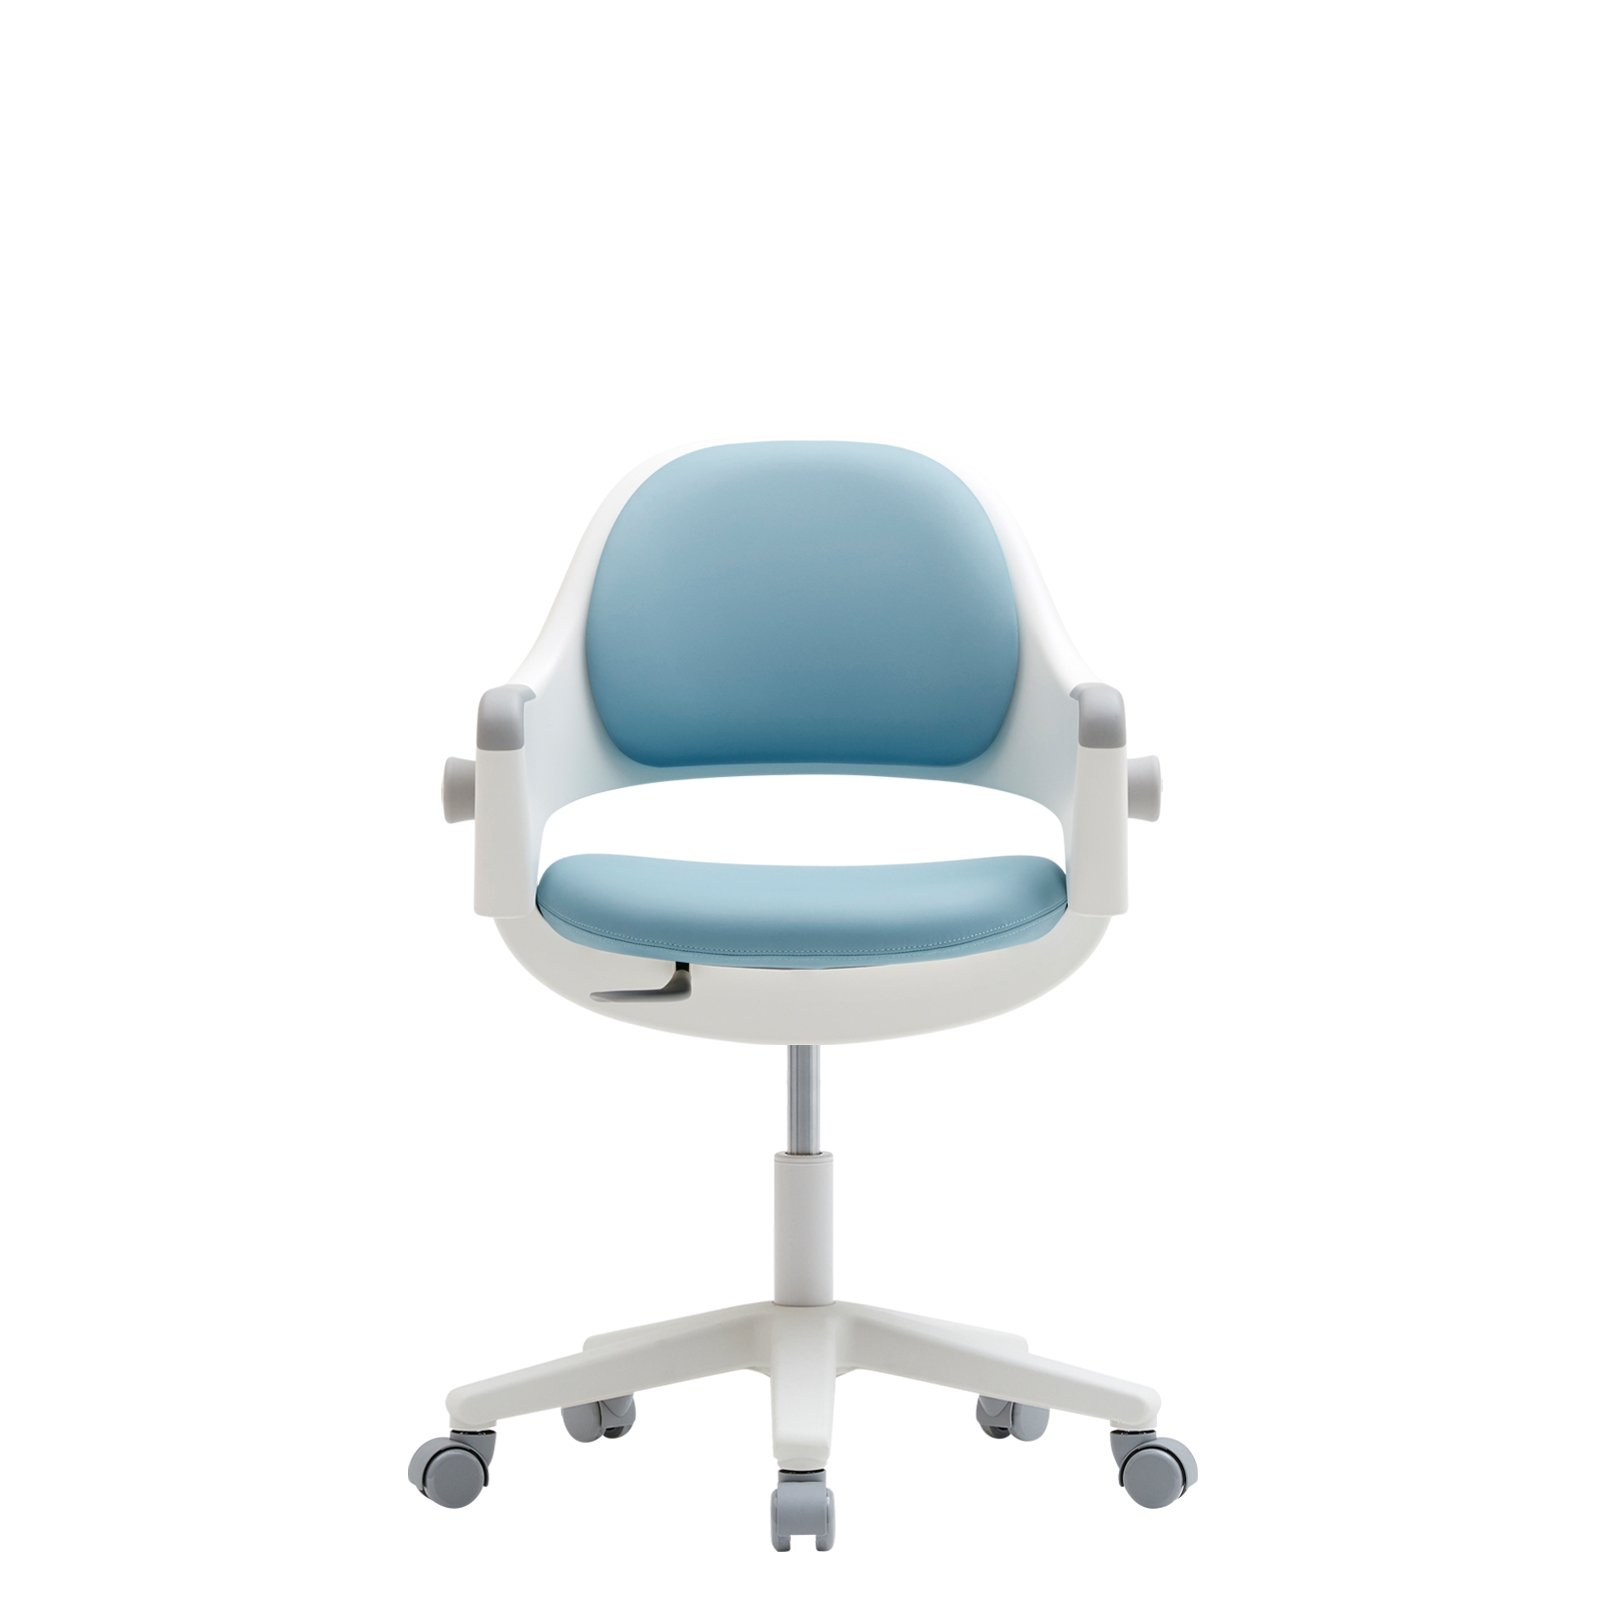 SIDIZ Ringo Rotation Gas Lift Desk Chair for Growing Kids (Lavender Blue (A374M, Synthetic Leather)+Foot Rest)